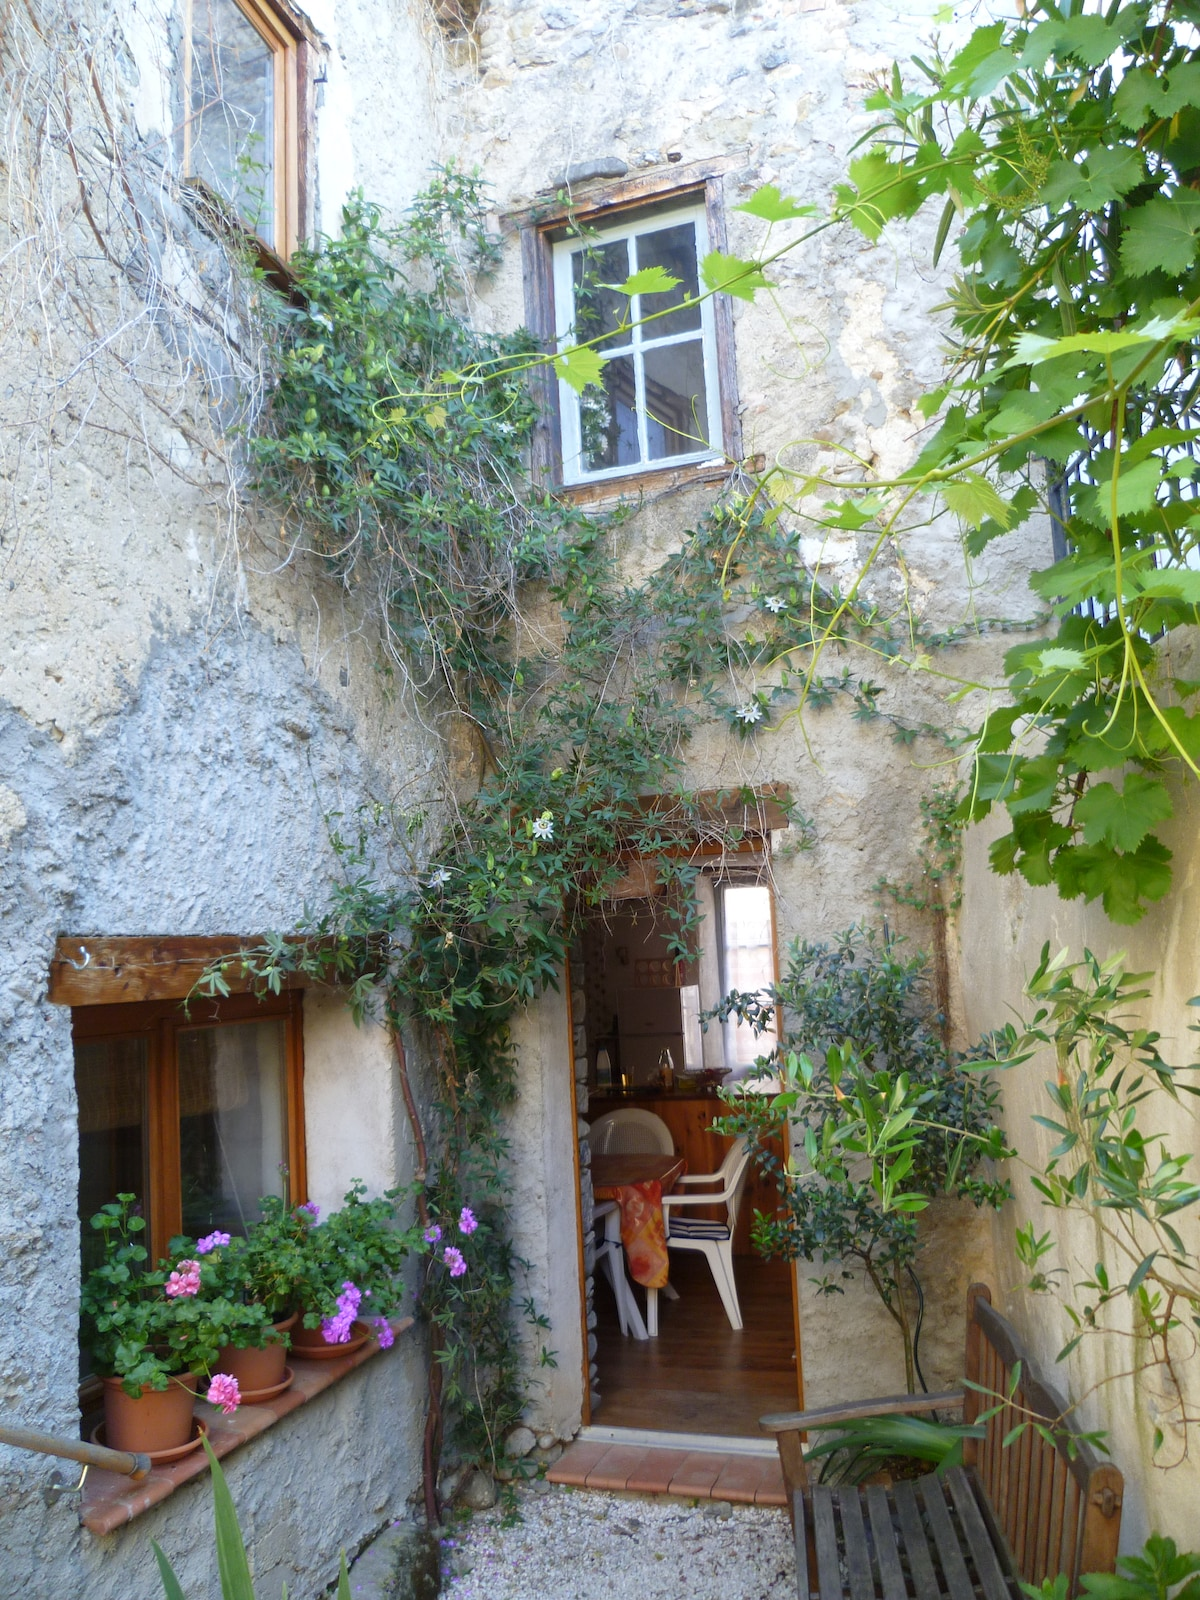 A very pretty house in the village where they invited sparkling wine - in 1536